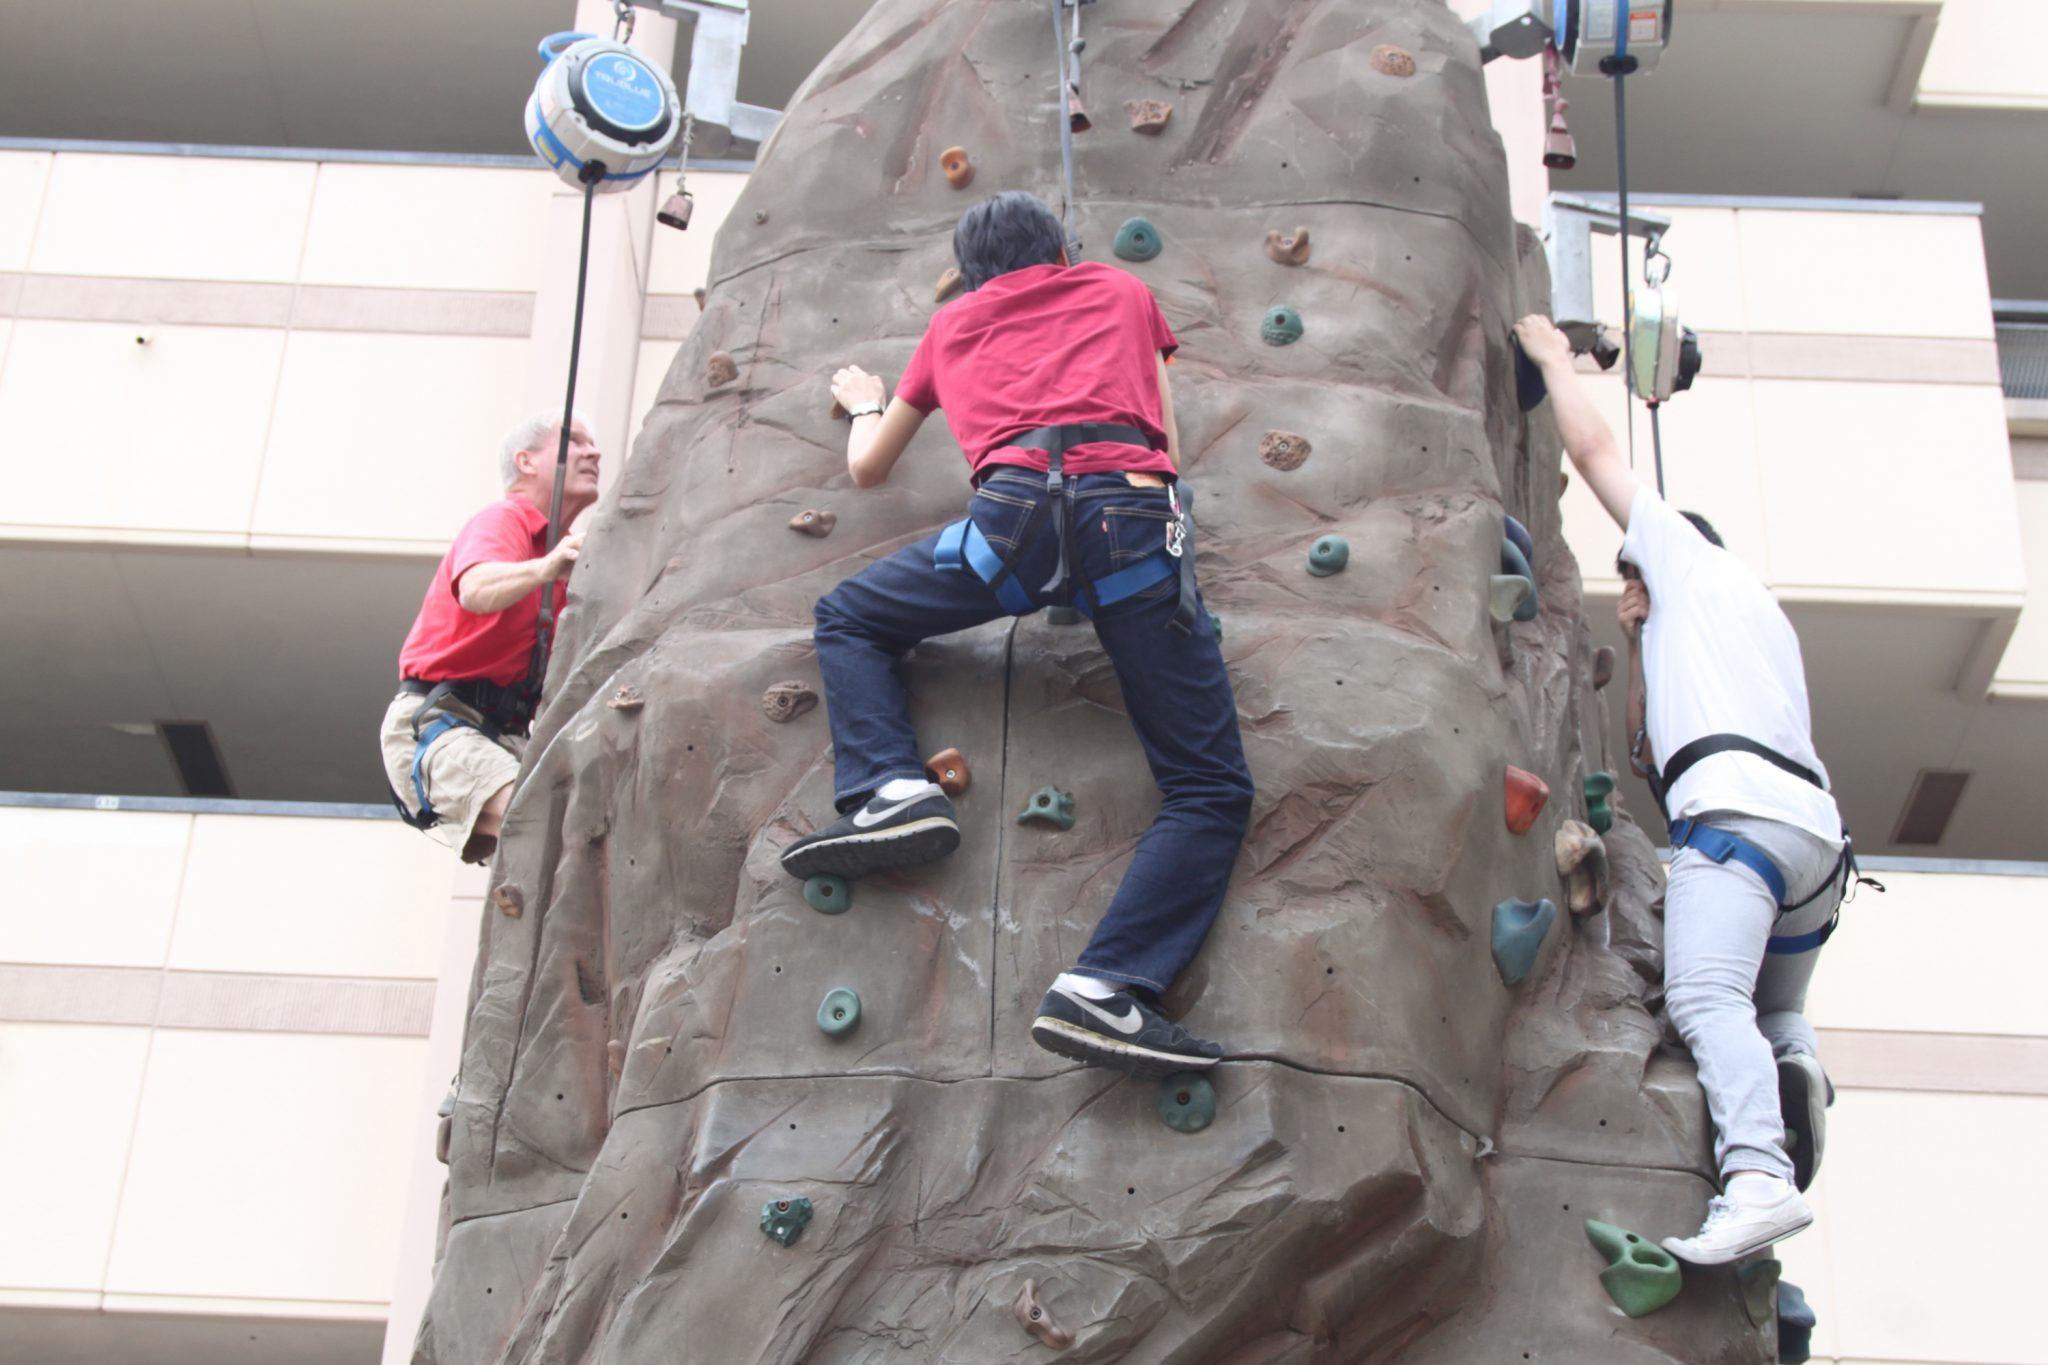 Nate Fermin/Courier Owner of Quantum Rock Fred Willis (left), Shawn Han 19 (mid), and Cam Duong 18 (right) attempt multiple levels of the rock wall featured in the middle of the PCC quad on September 3 2015. Quantum Rock and their rock wall tower over the quad for students to try for free.